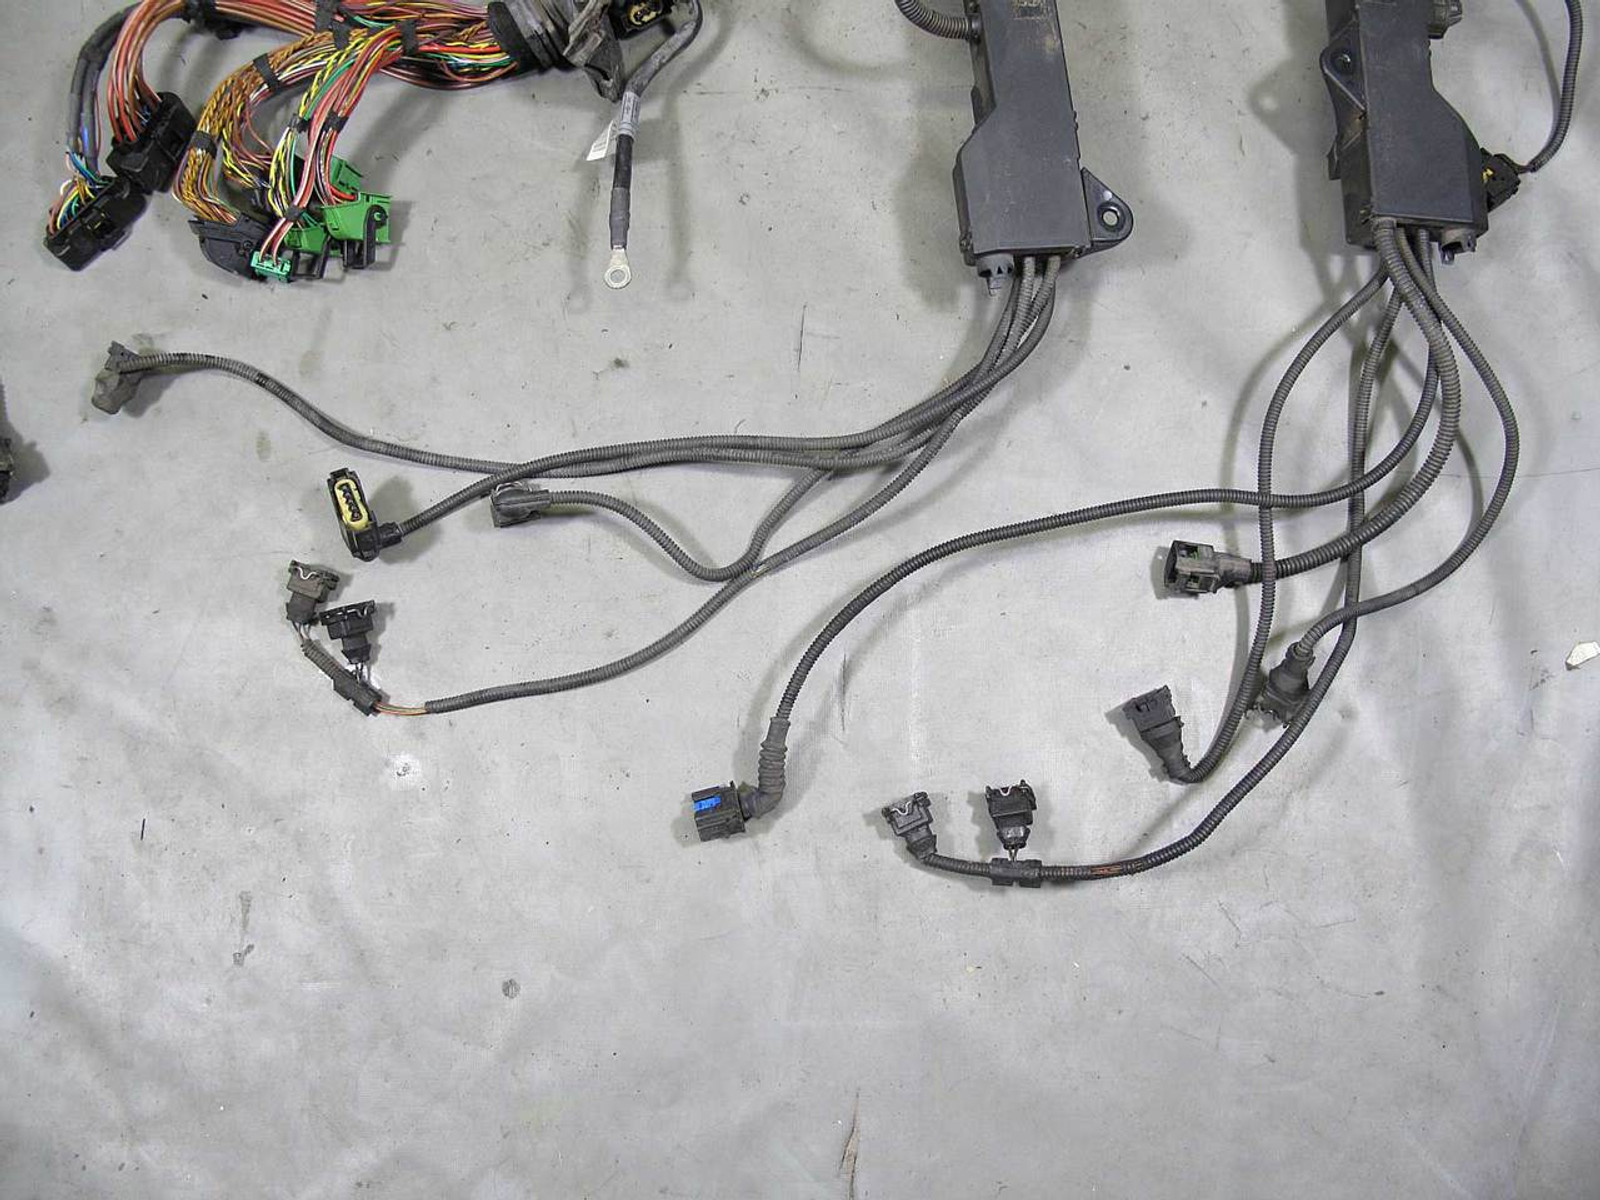 bmw e65 e66 745i 745il n62 v8 engine wiring harness w broken connector 2002 2003  wire harness connectors for 2002 bmw #15